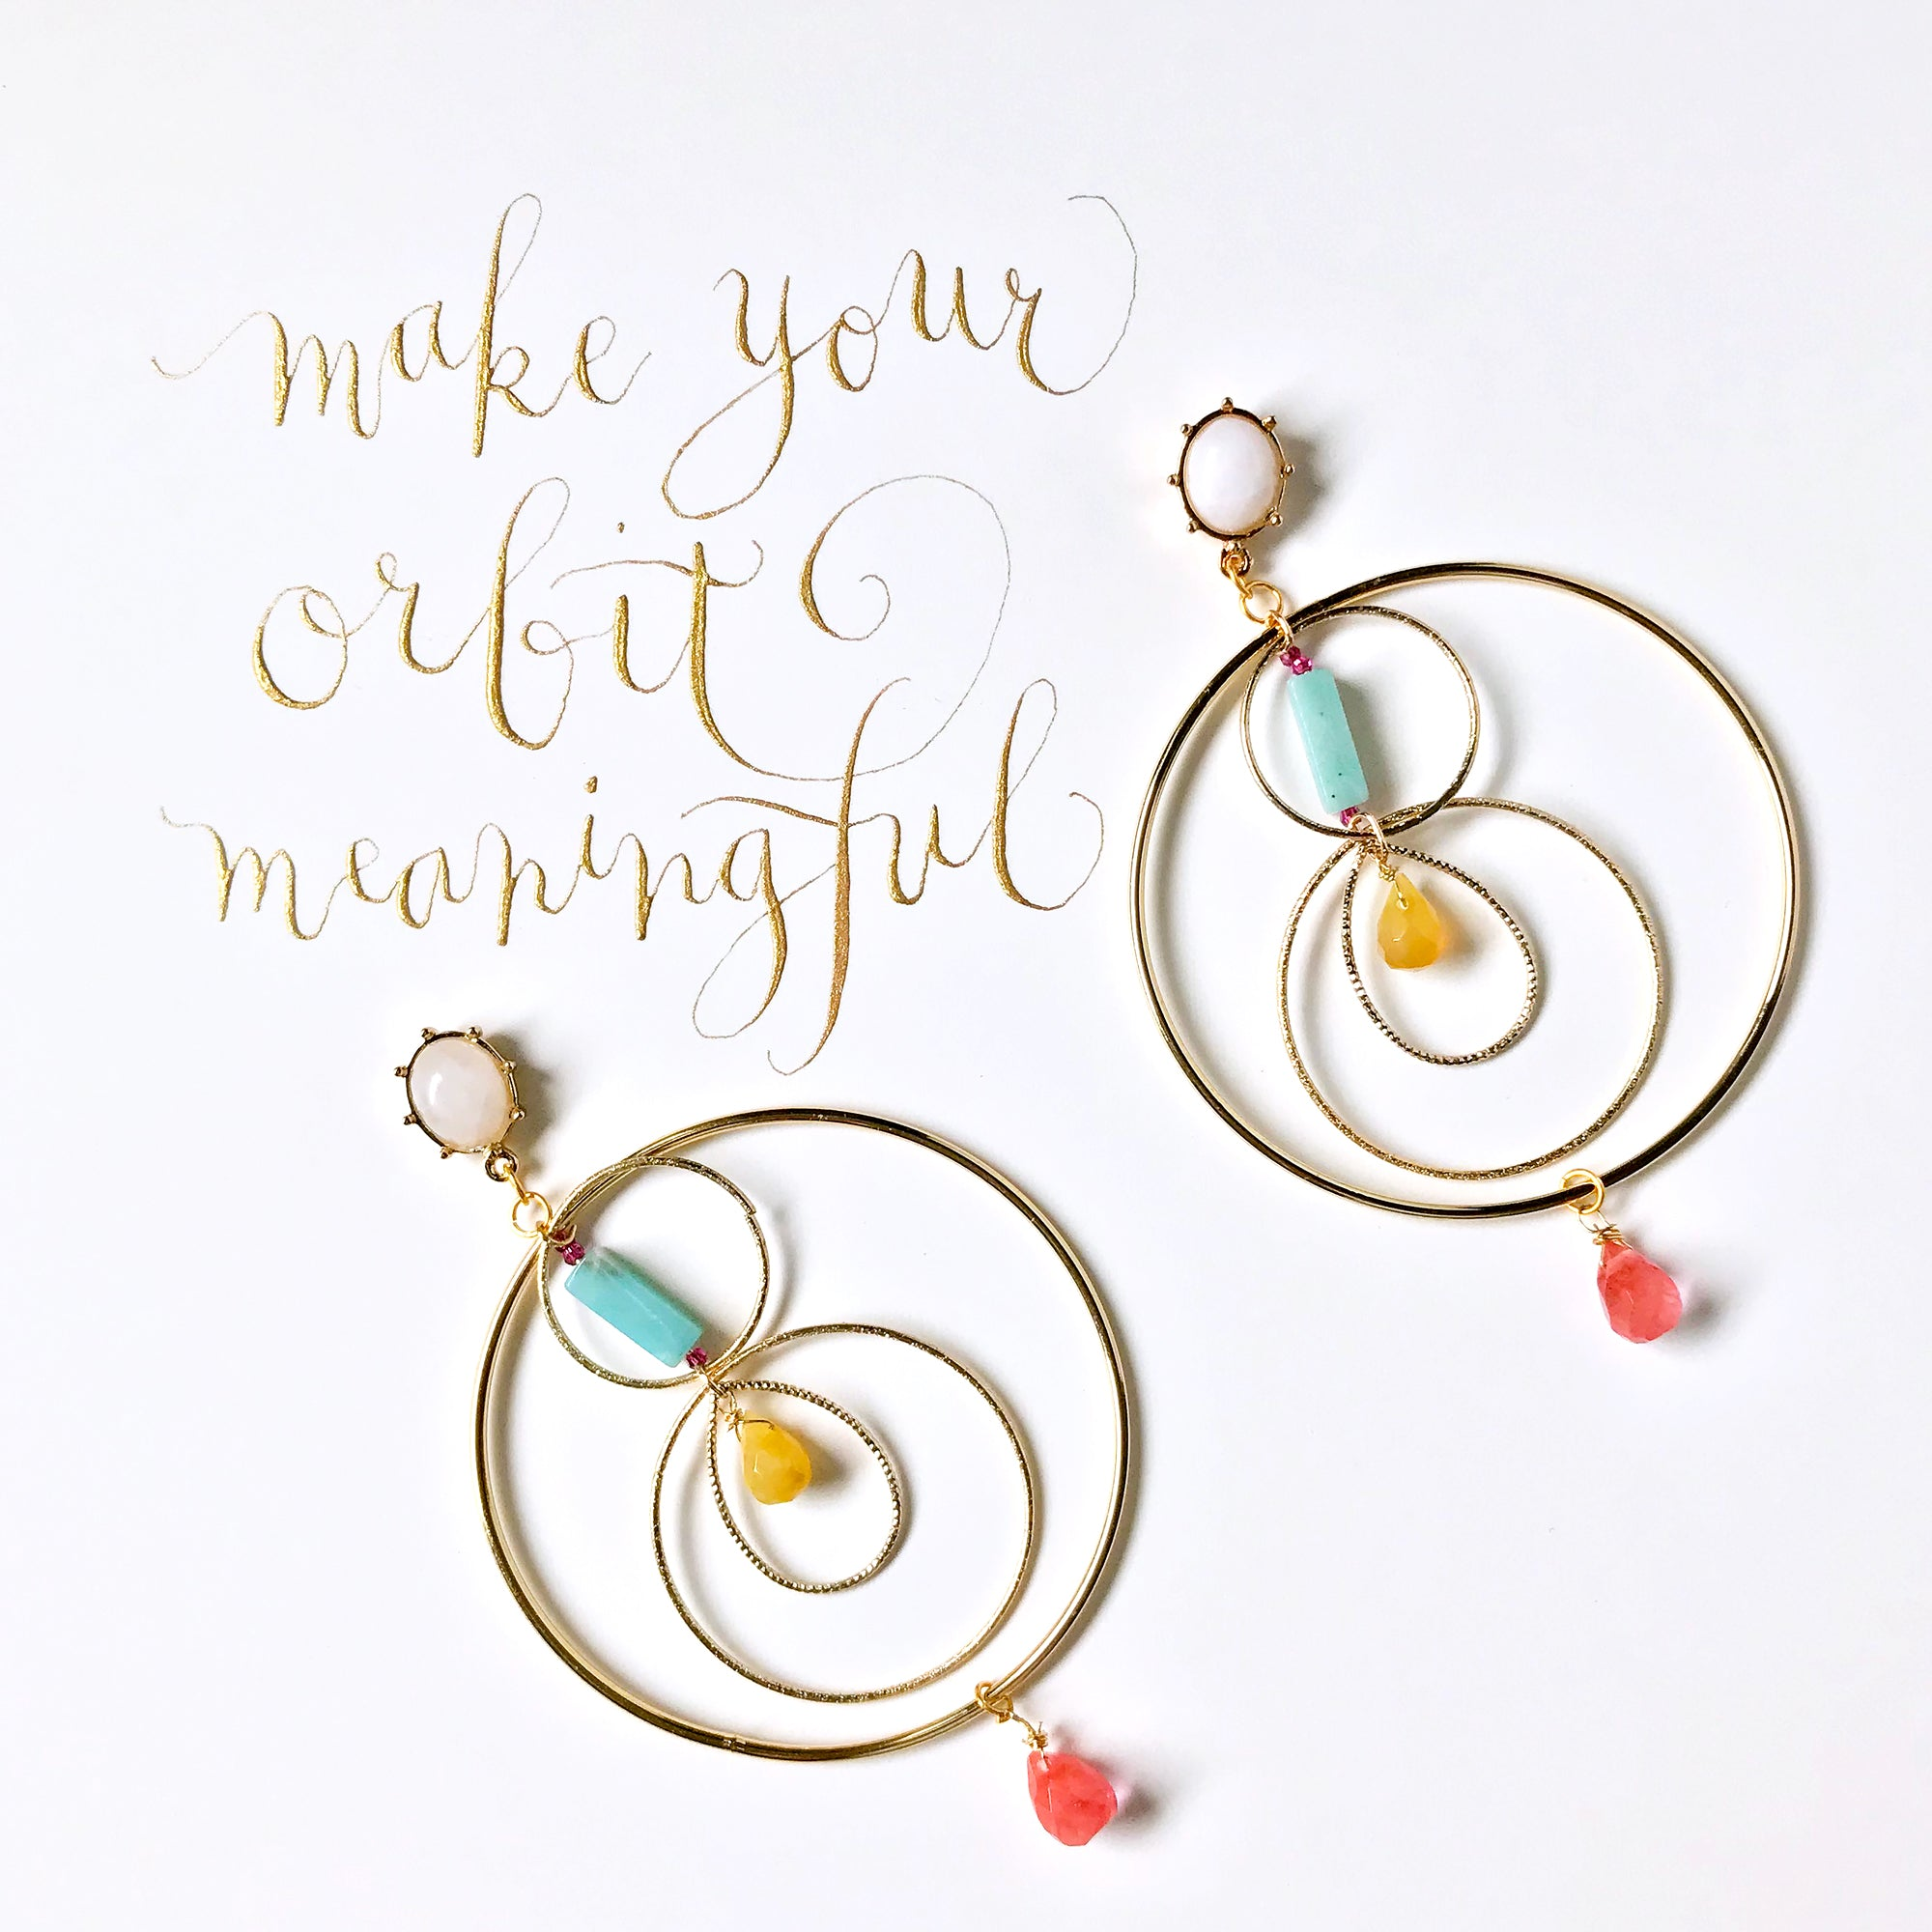 #SequinSayings - Make Your Orbit Meaningful